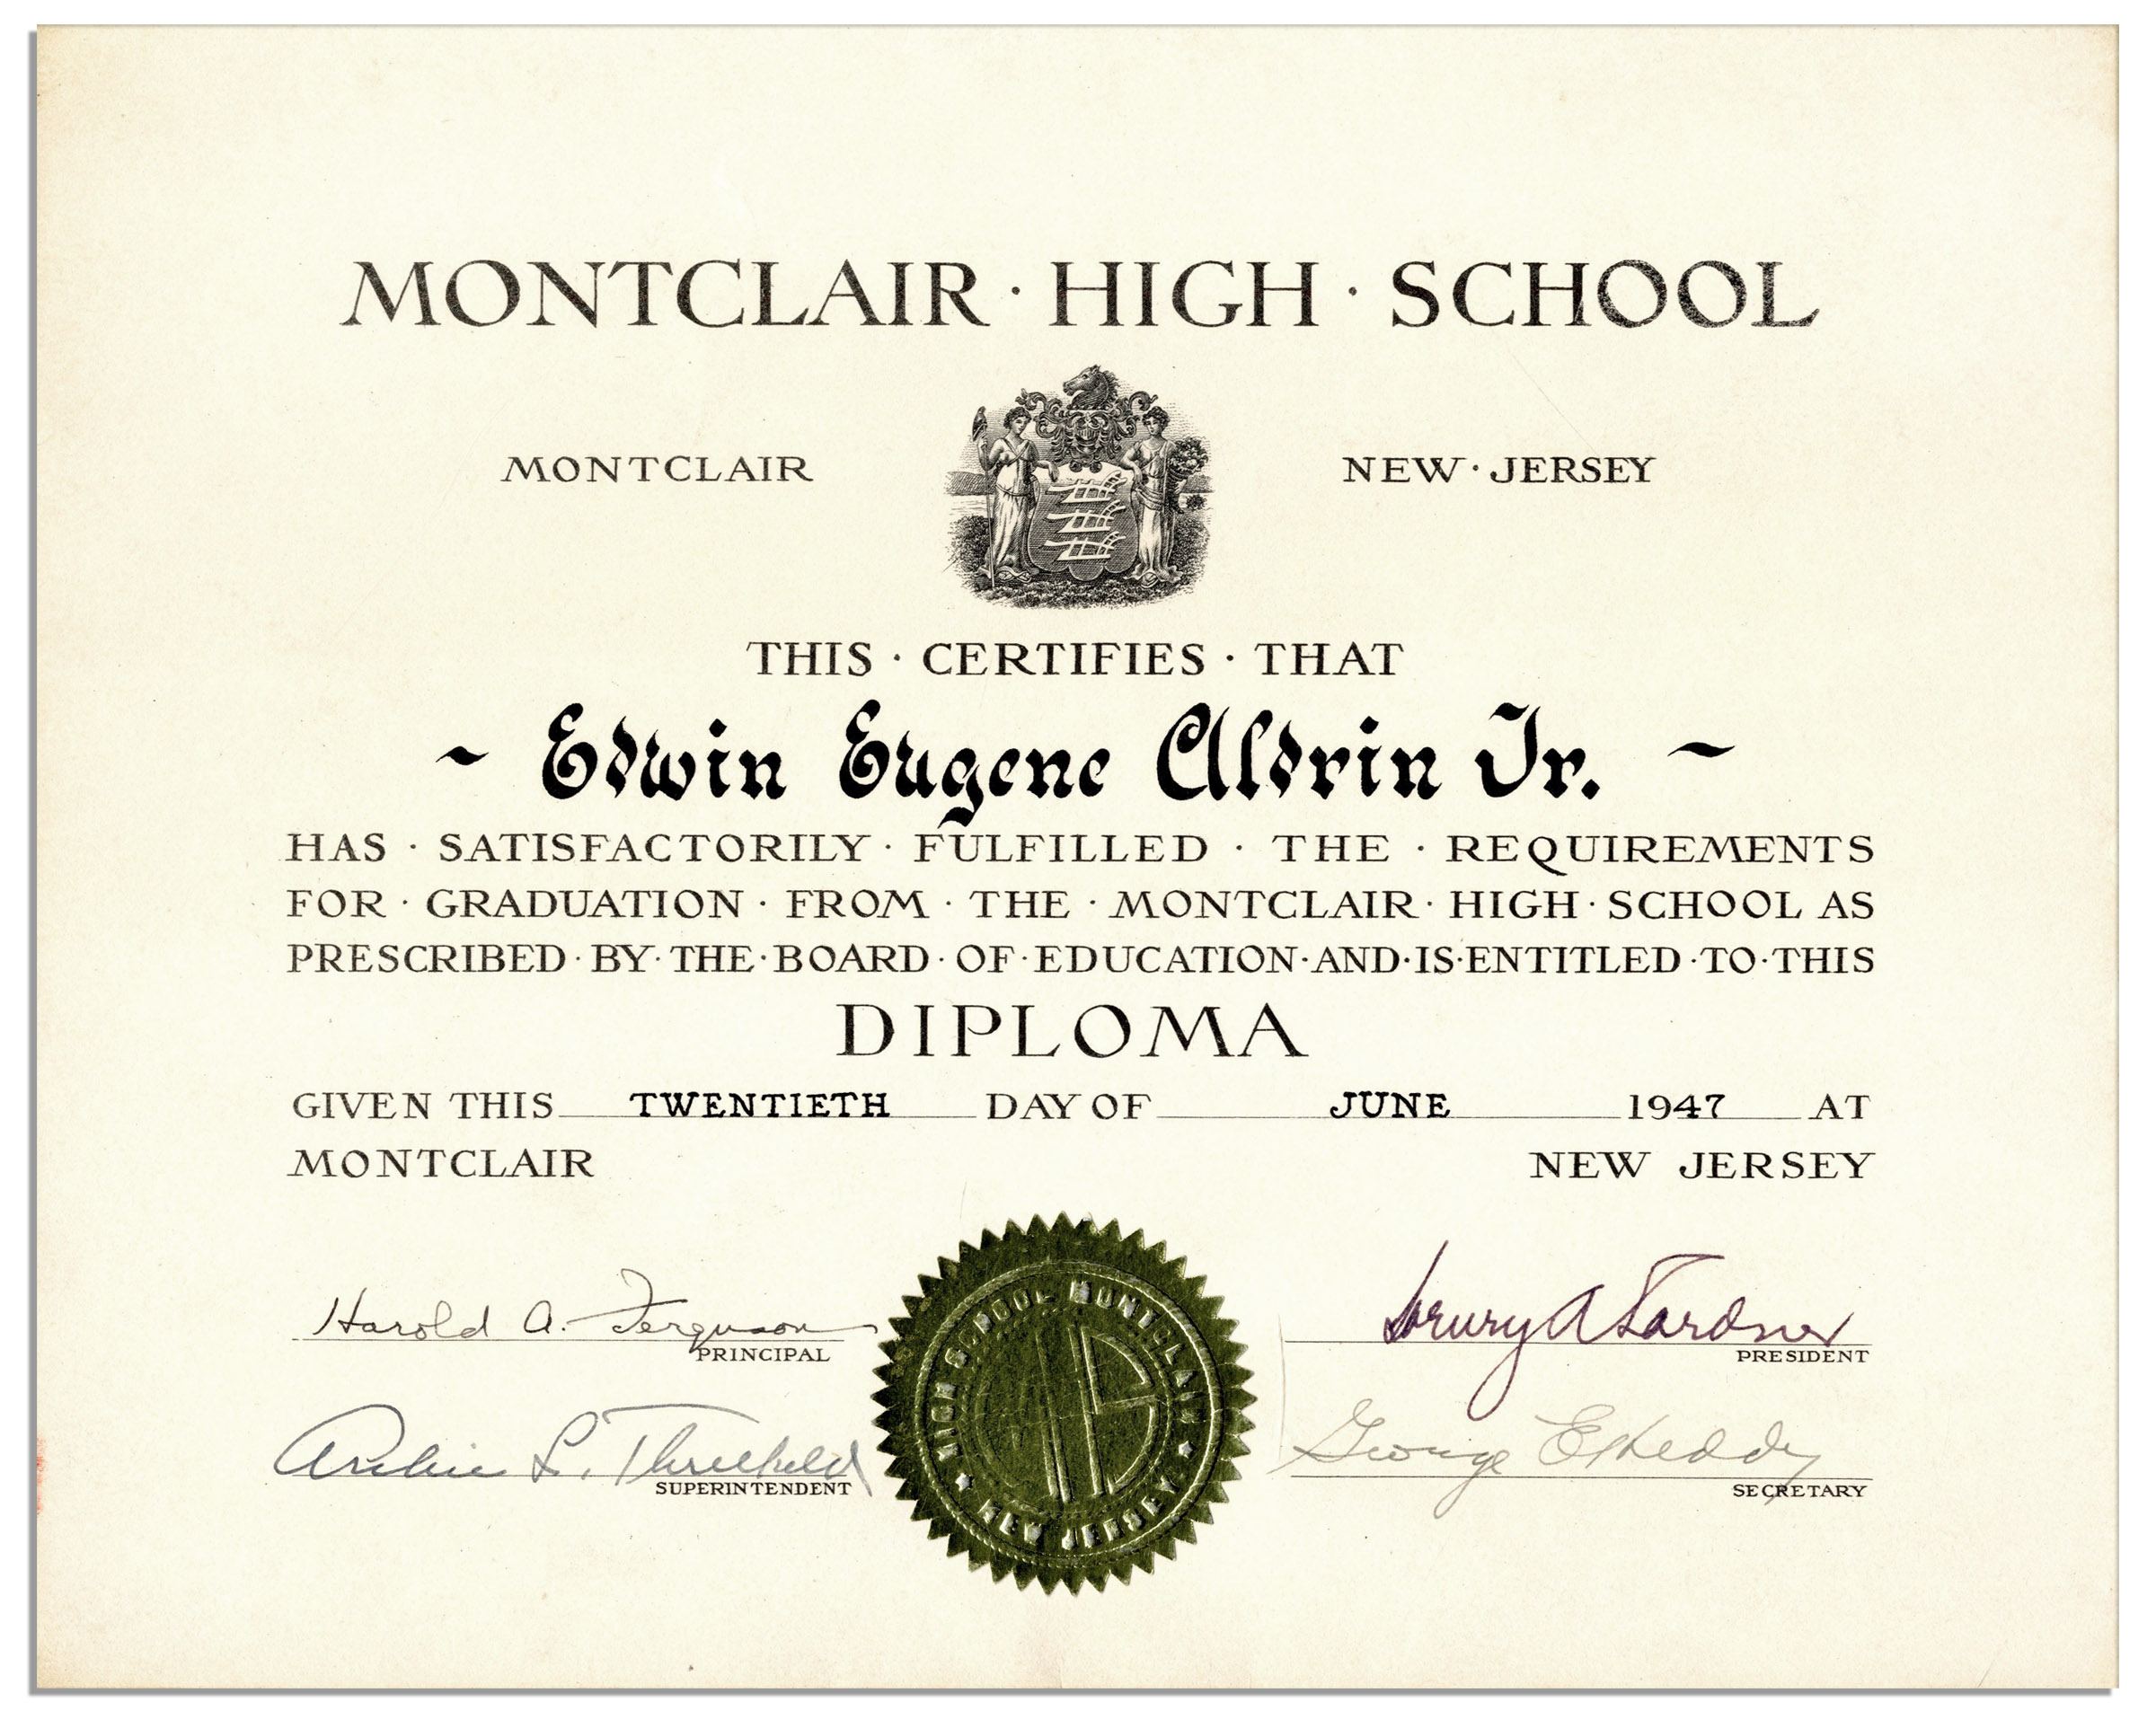 high school diploma The indiana state board of education adopts course and credit requirements for earning a high school diploma the newest set of requirements went into effect for students who entered high school in the fall of 2012 (class of 2016 and below).